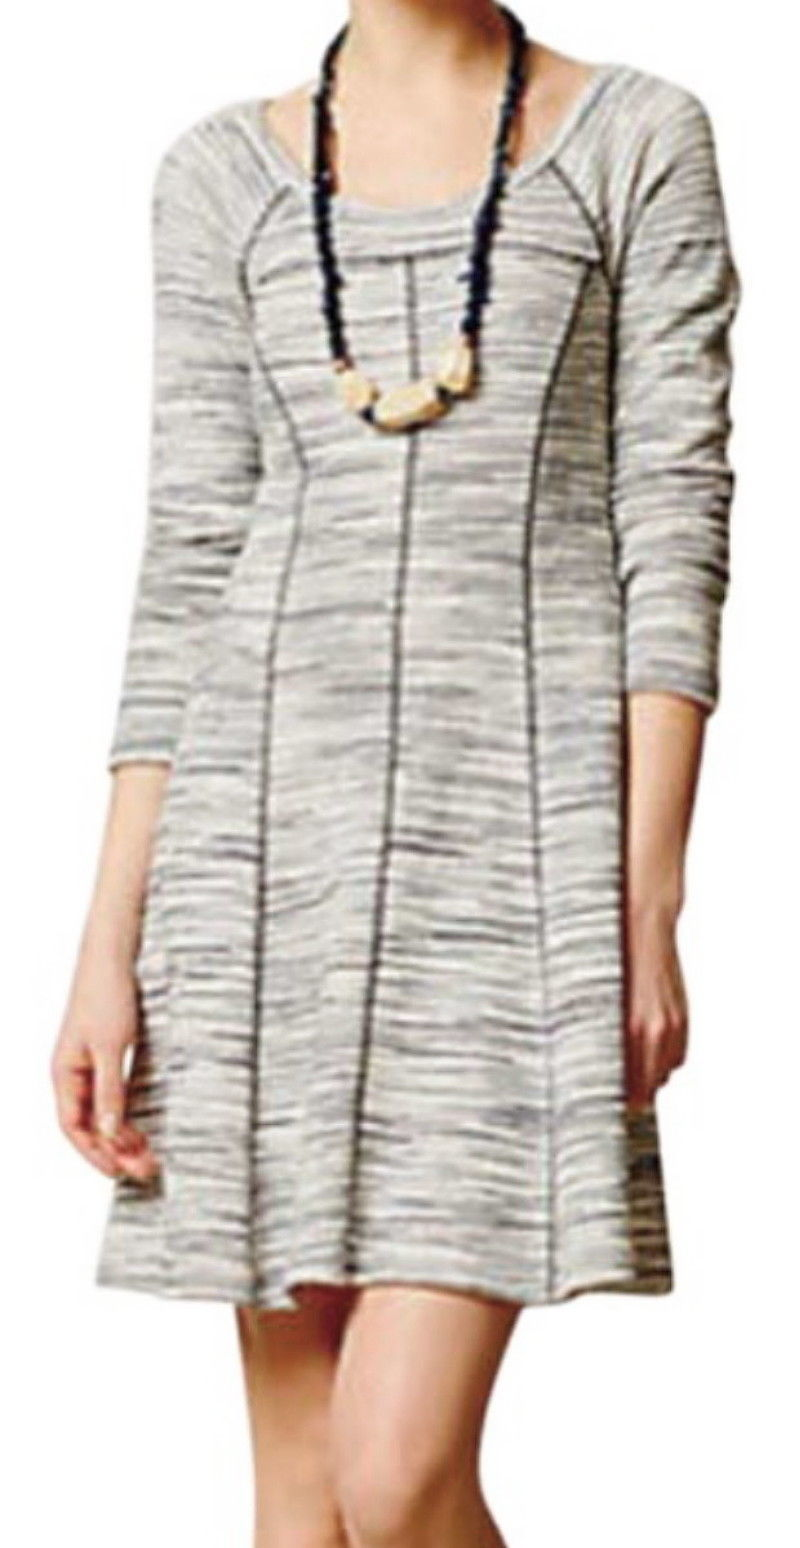 Anthropologie Blurred Lines Dress Small 2 4 Grey Tunic SOFT COMFY Versatile NWT - $67.15